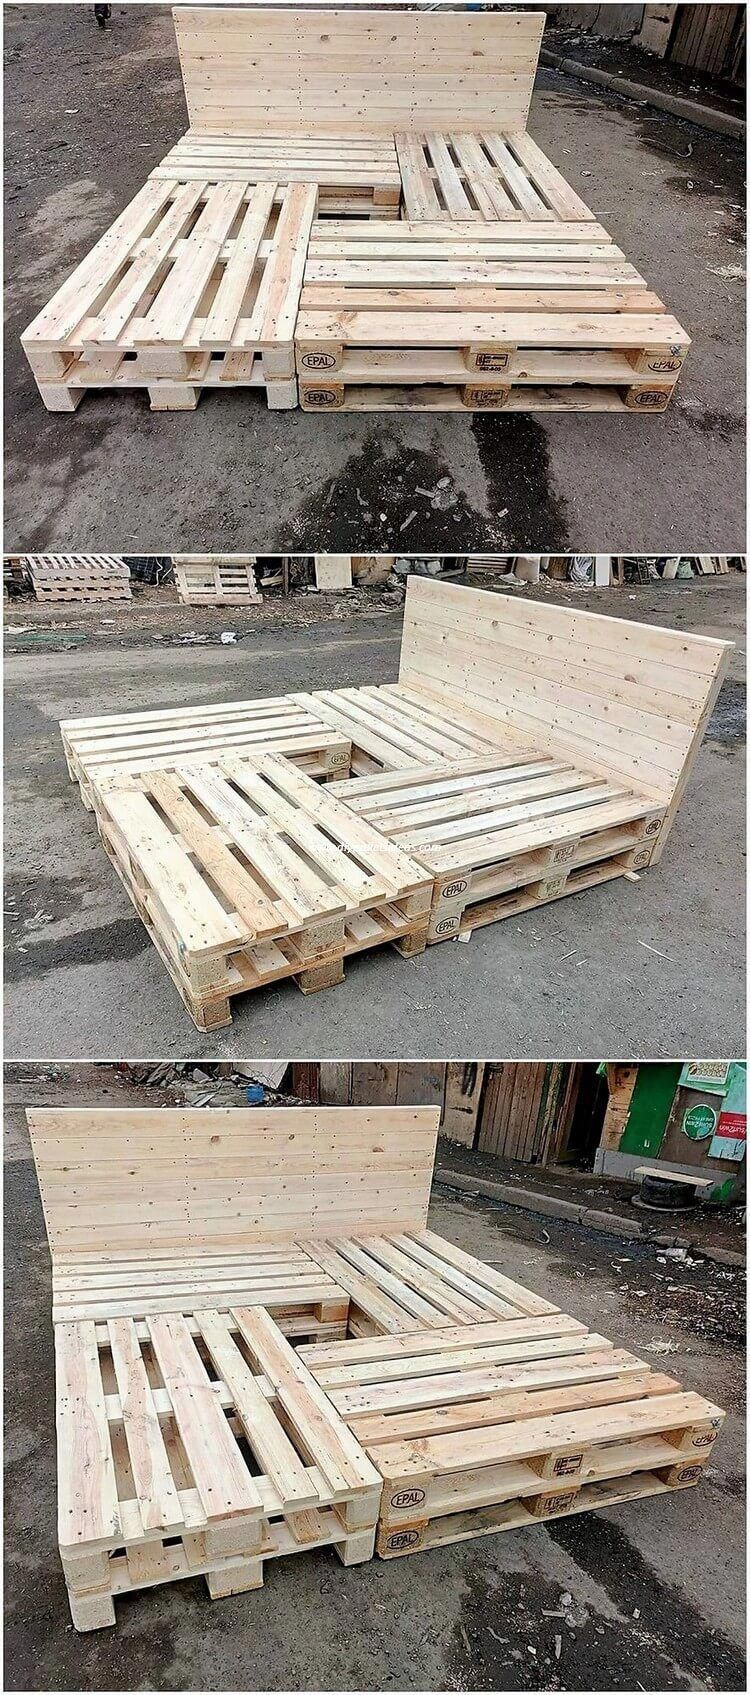 Bed Frame Full With Headboard Bed Frames Without Box Spring Queen Size Bed Furniture In 2020 Wood Pallets Diy Pallet Projects Wooden Pallets